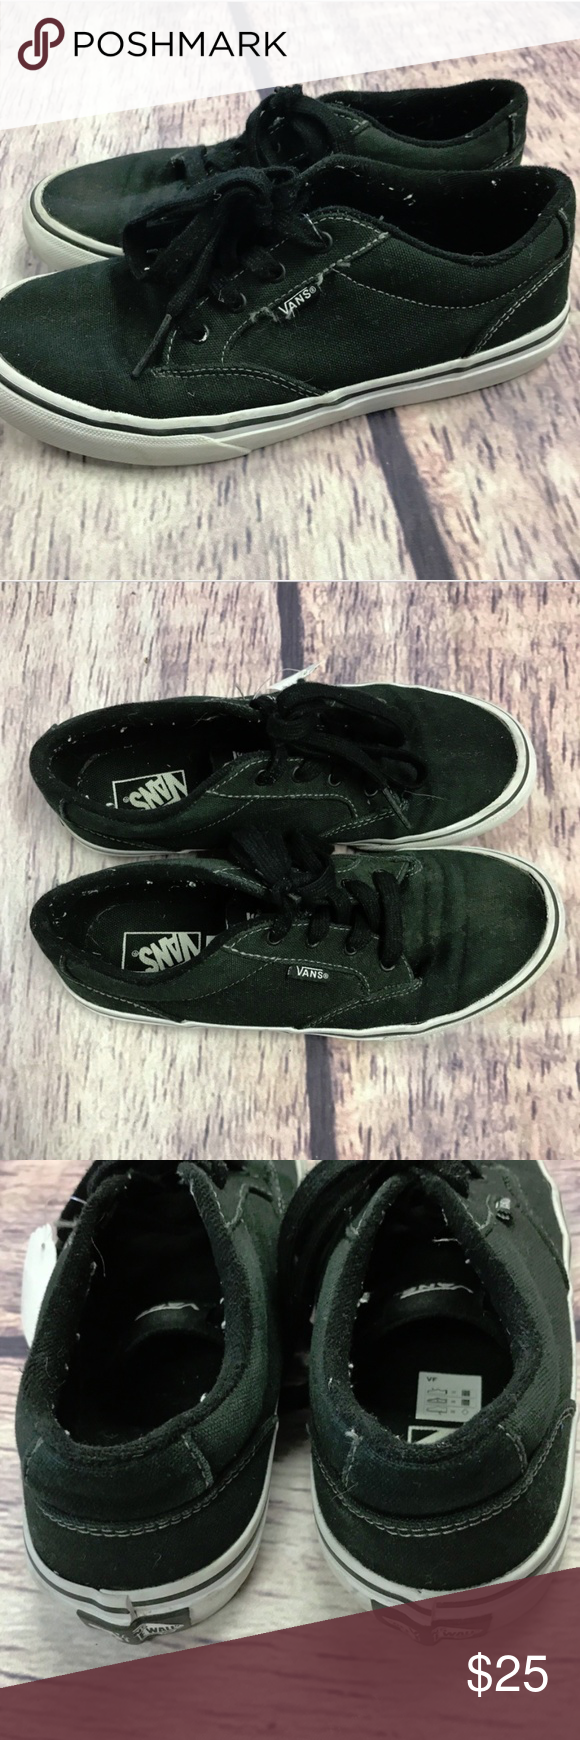 6ab3f337dd vans off the wall kids youth size 4 black sneakers vans off the wall kids  youth size 4 black sneakers shoes great preowned condition normal marks from  ...